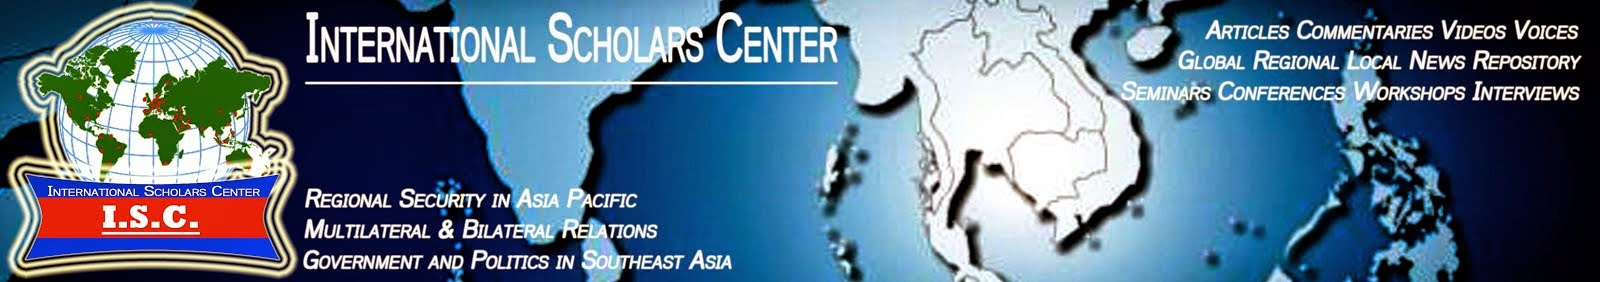 International Scholars Center - The Cambodian Observer